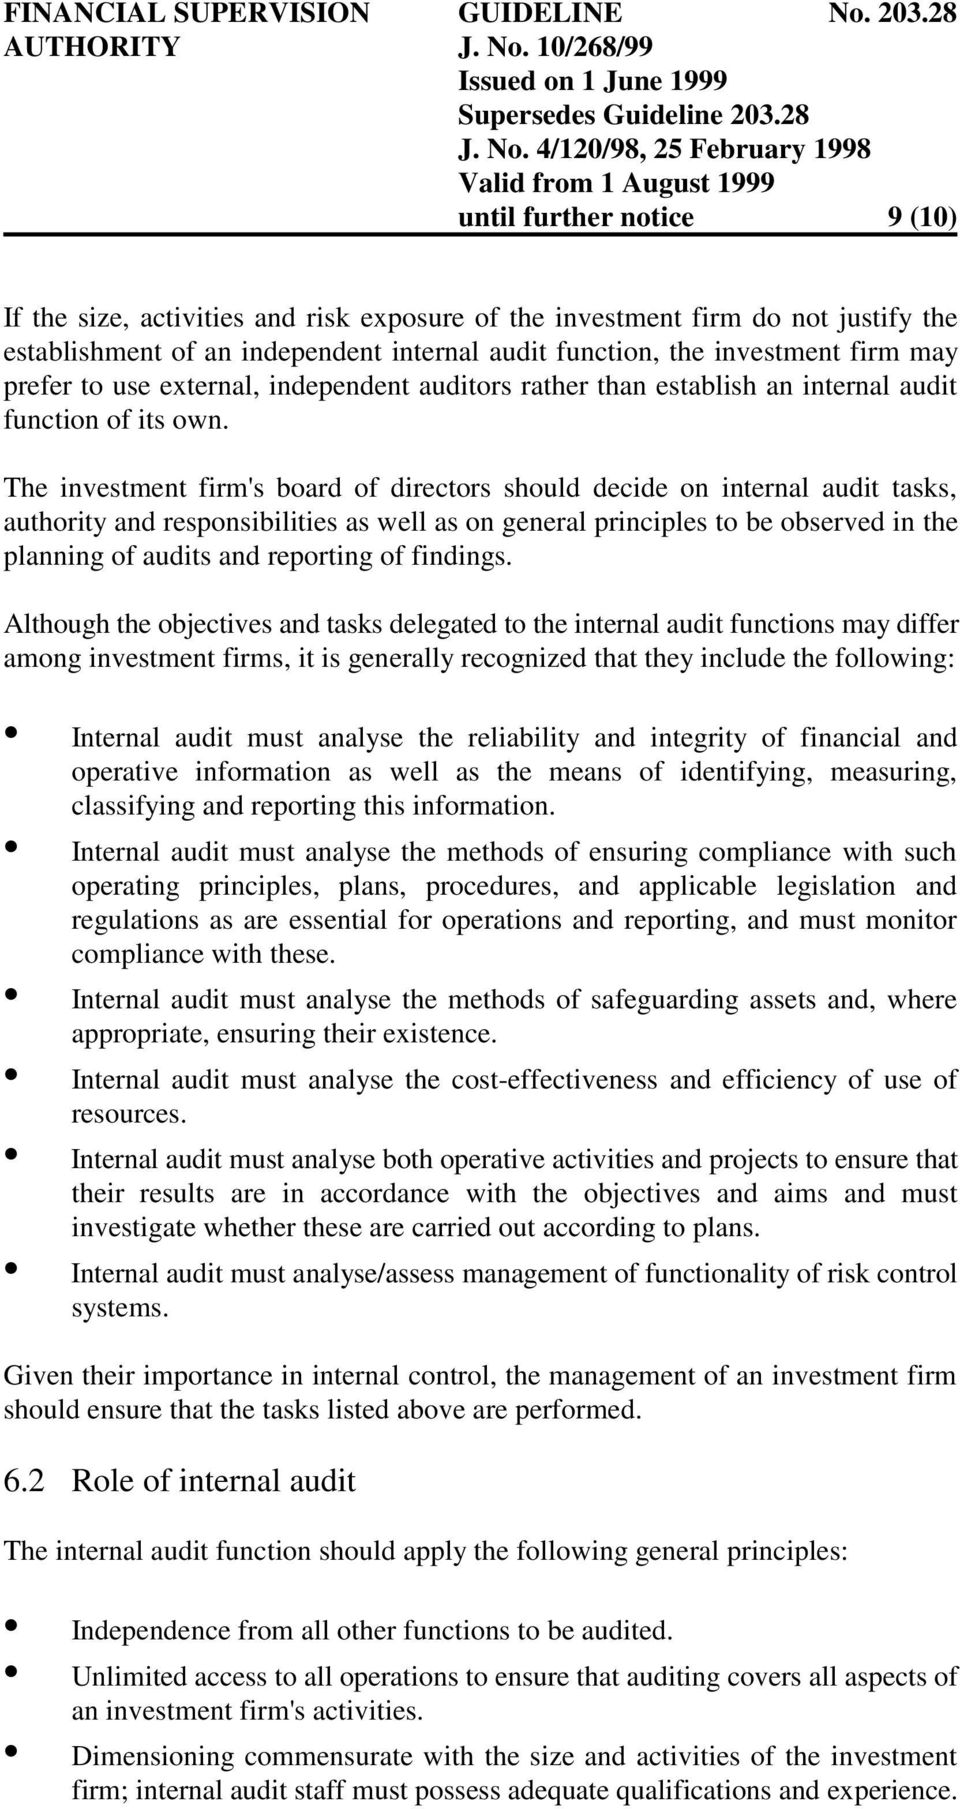 The investment firm's board of directors should decide on internal audit tasks, authority and responsibilities as well as on general principles to be observed in the planning of audits and reporting